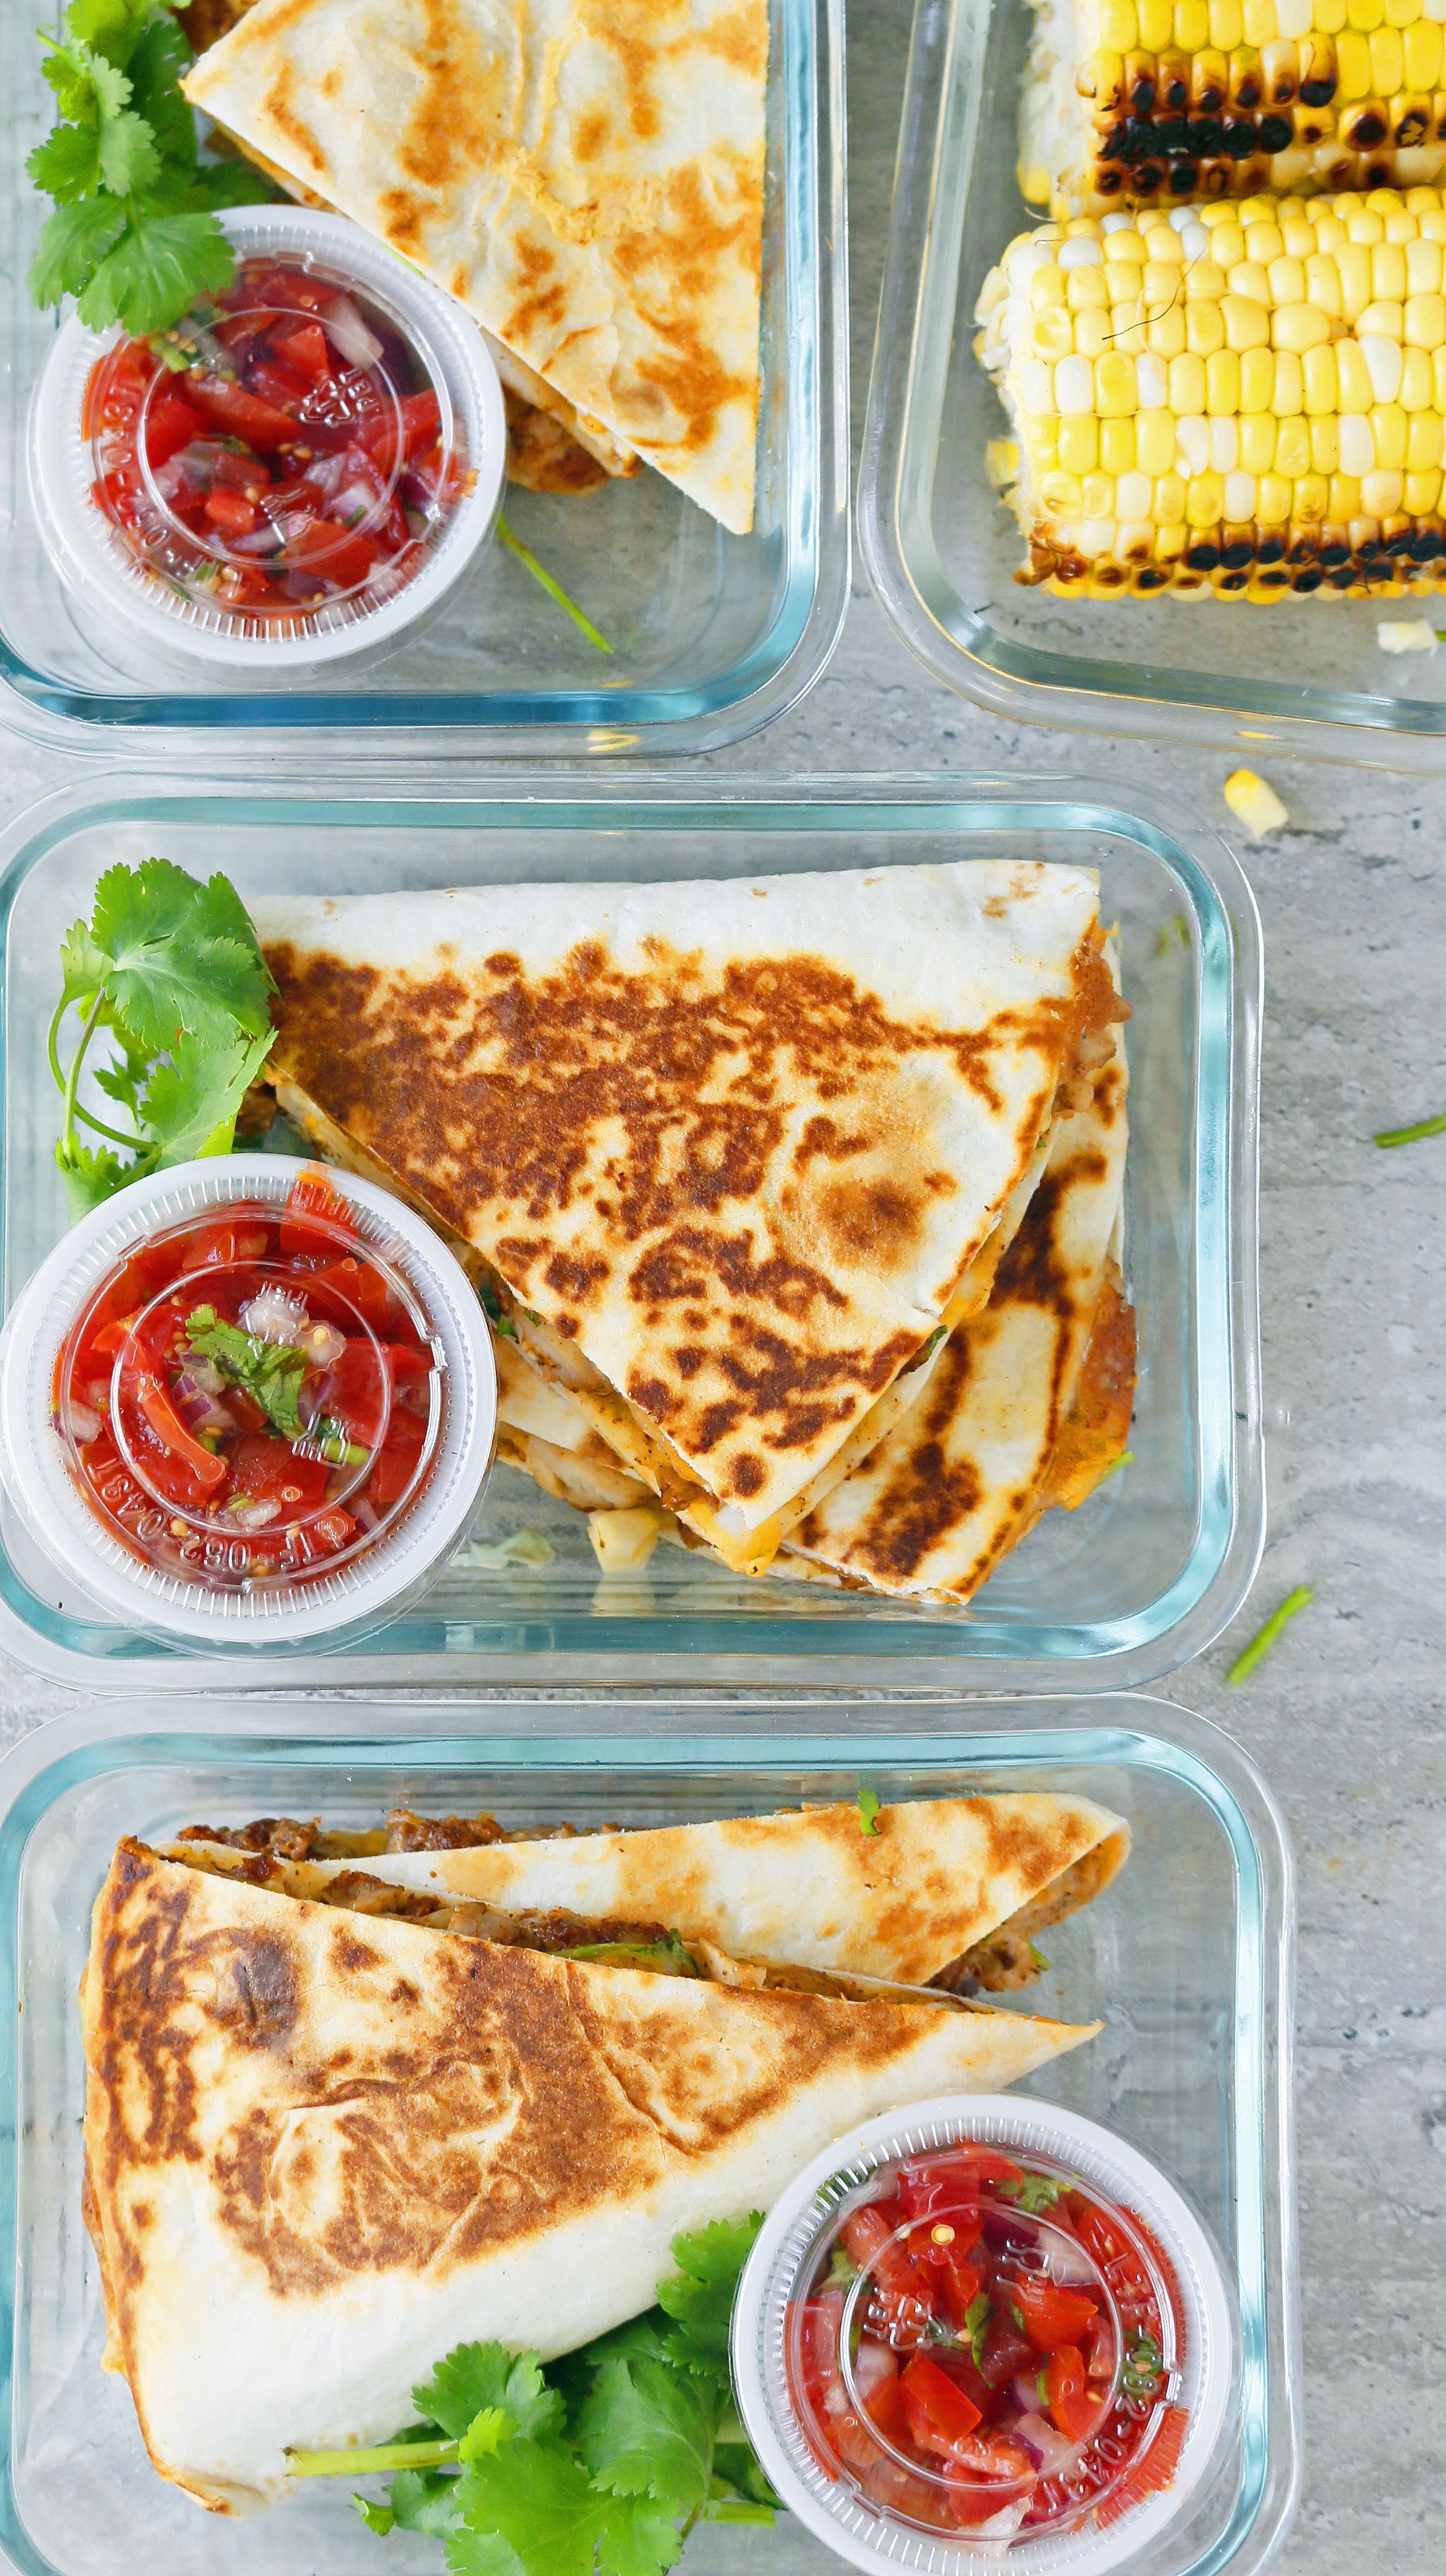 Spicy Chicken Ranch Quesadillas + Meal Prep is part of Easy meal prep - Spicy chicken ranch quesadillas that are cheesy, spicy and are delicious with pico de gallo